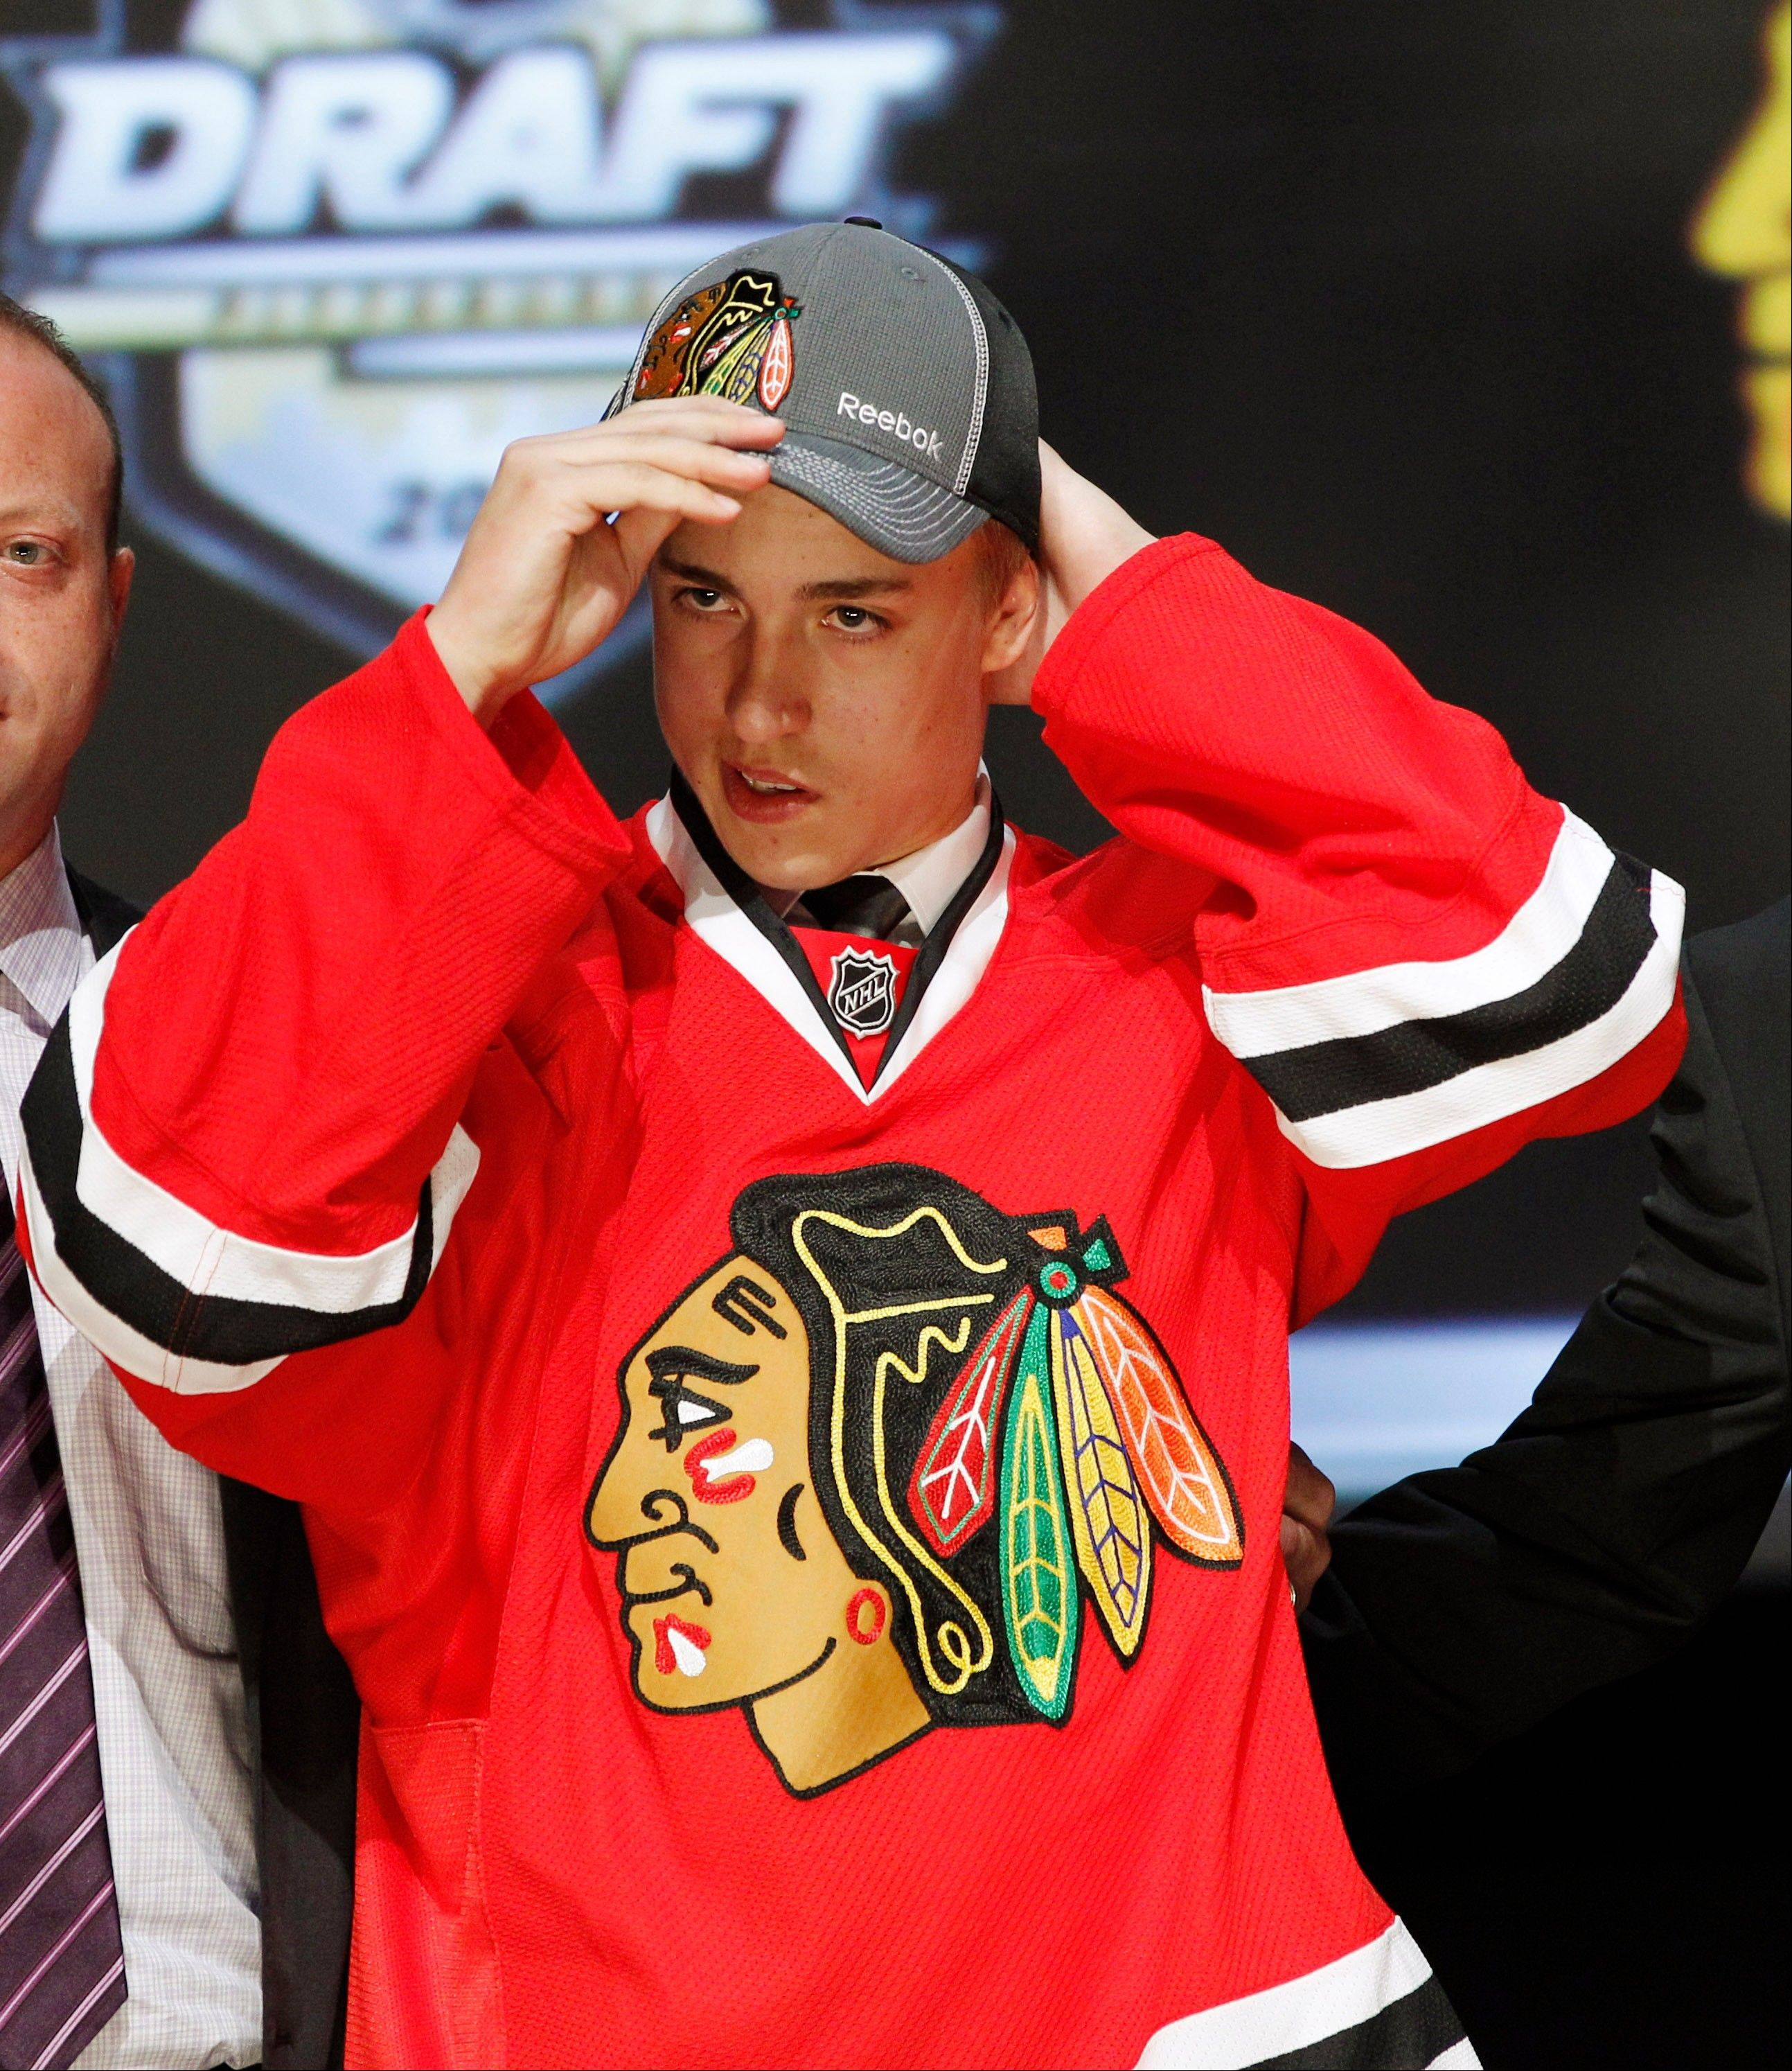 Teuvo Teravainen, a winger from Finland, pulls on a Chicago Blackhawks cap after being chosen 18th overall in the first round of the NHL hockey draft on Friday, June 22, 2012, in Pittsburgh.